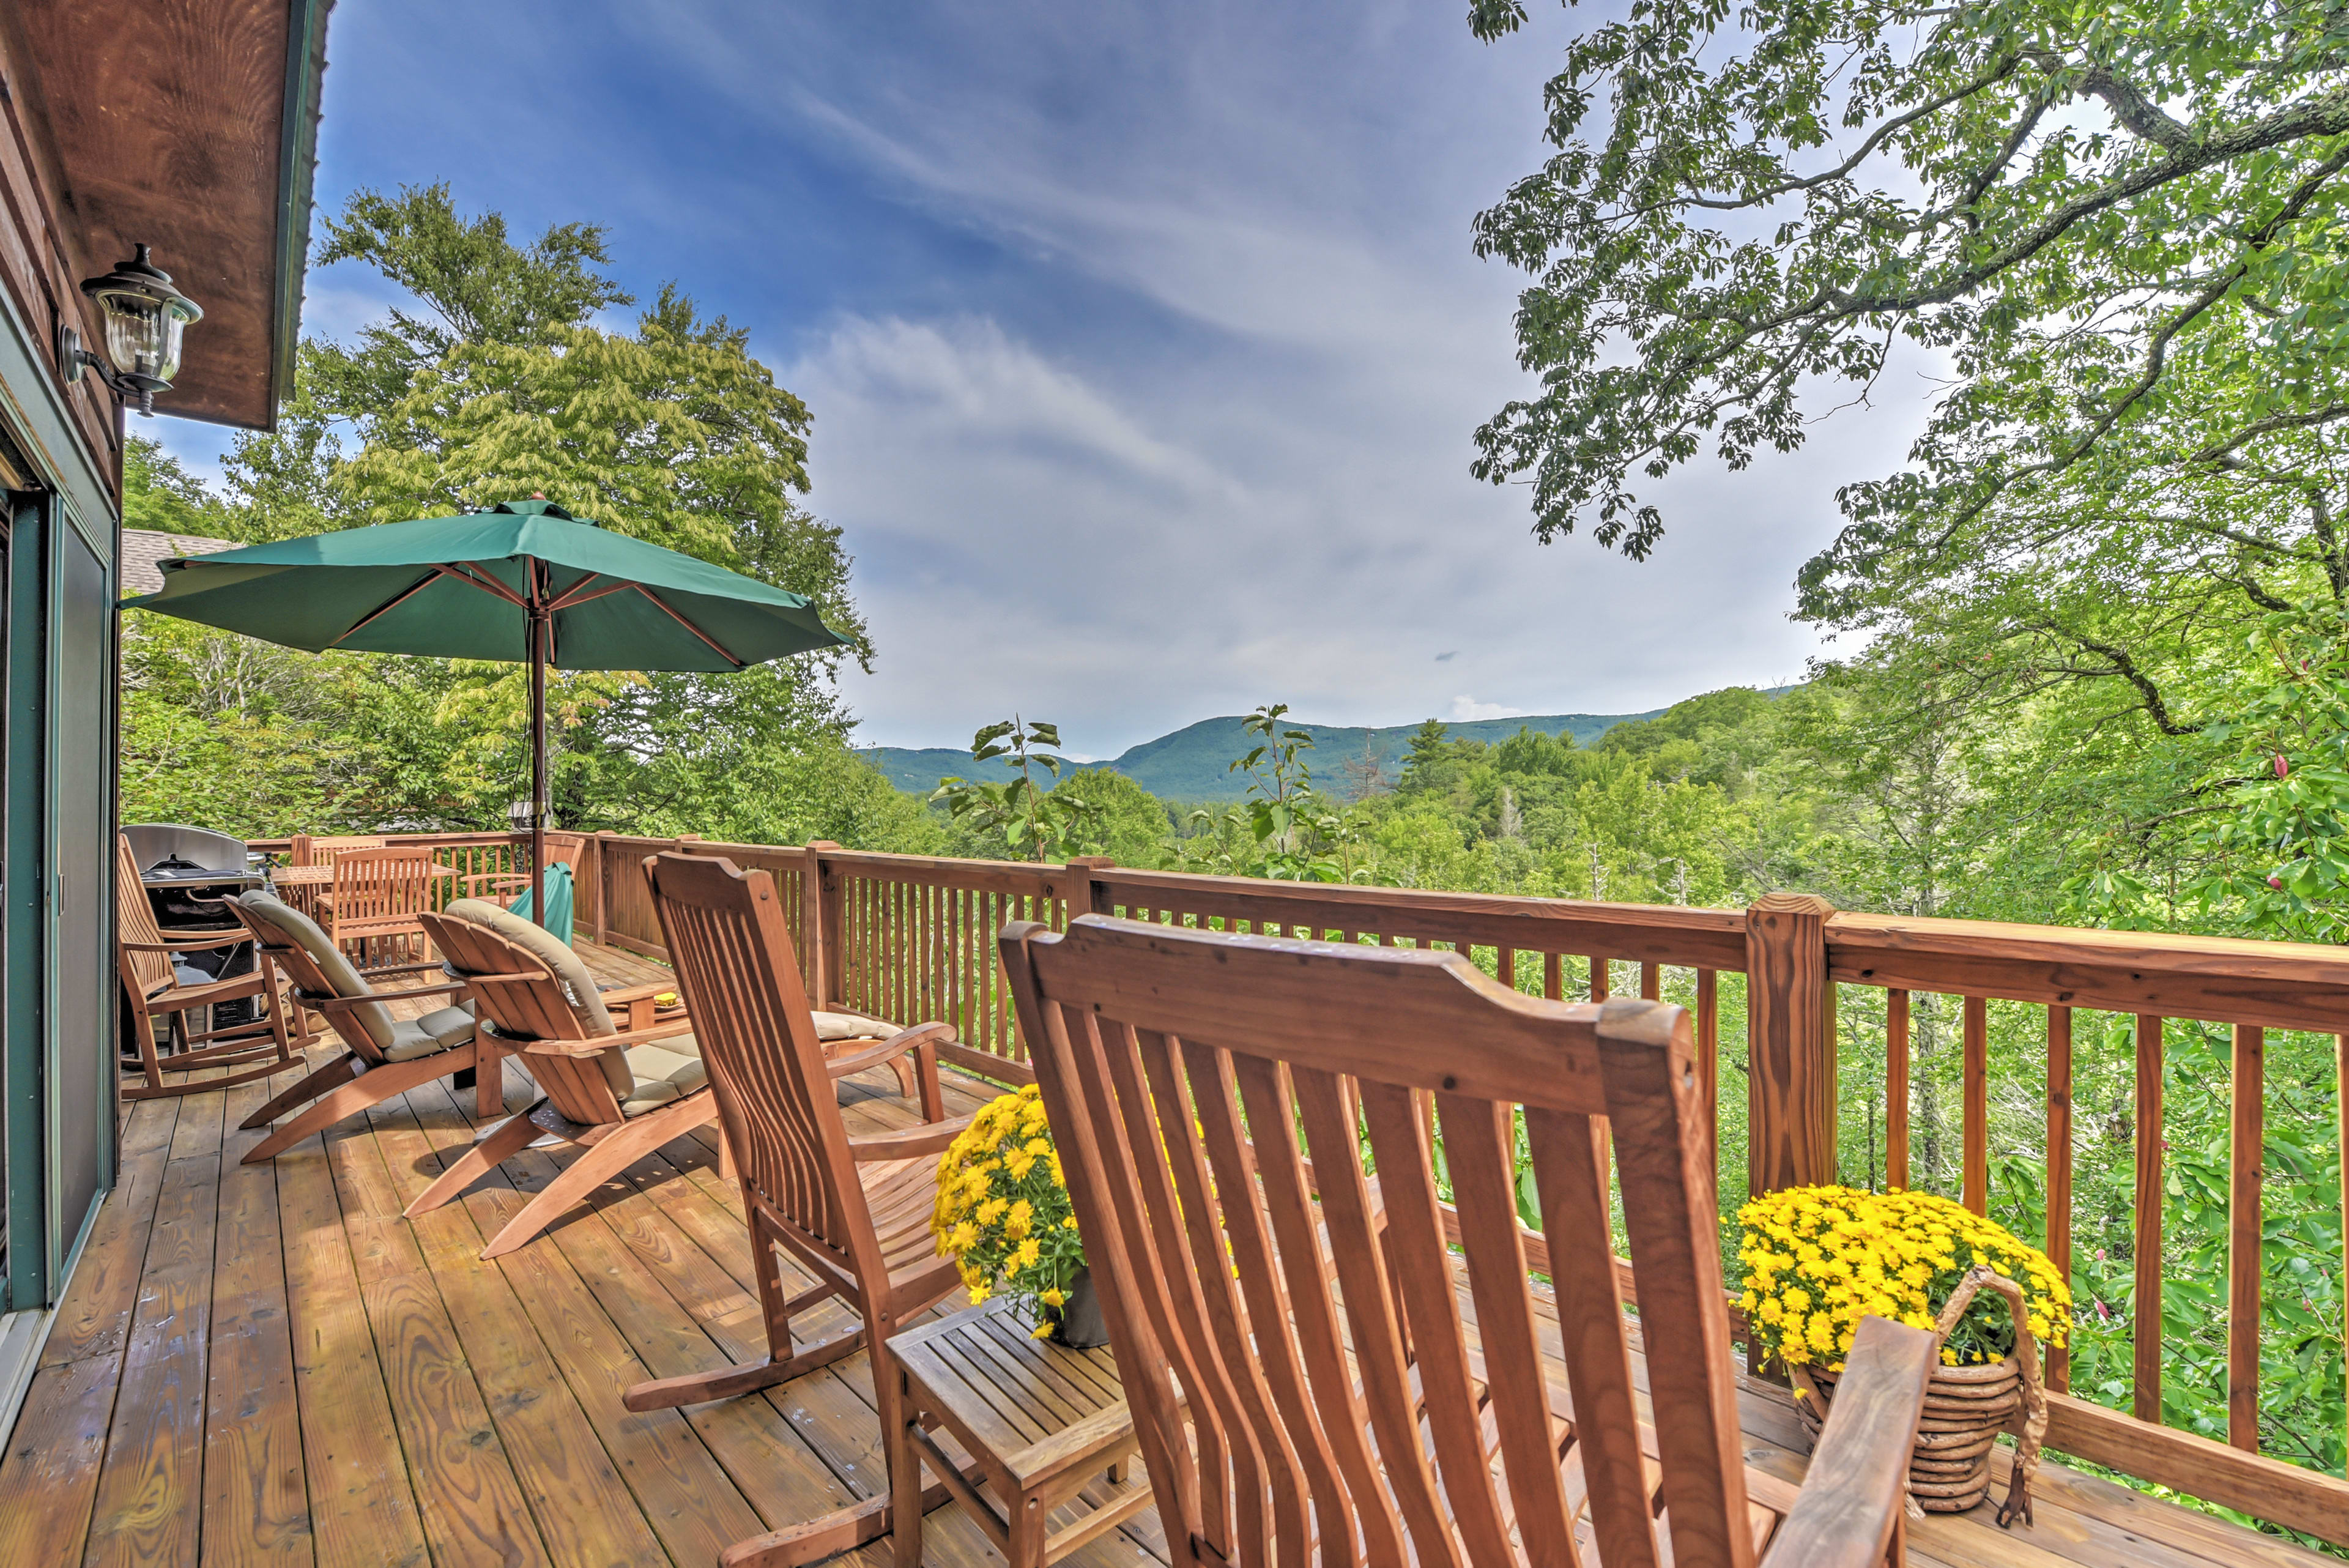 Create once in a lifetime memories from this vacation rental cabin!